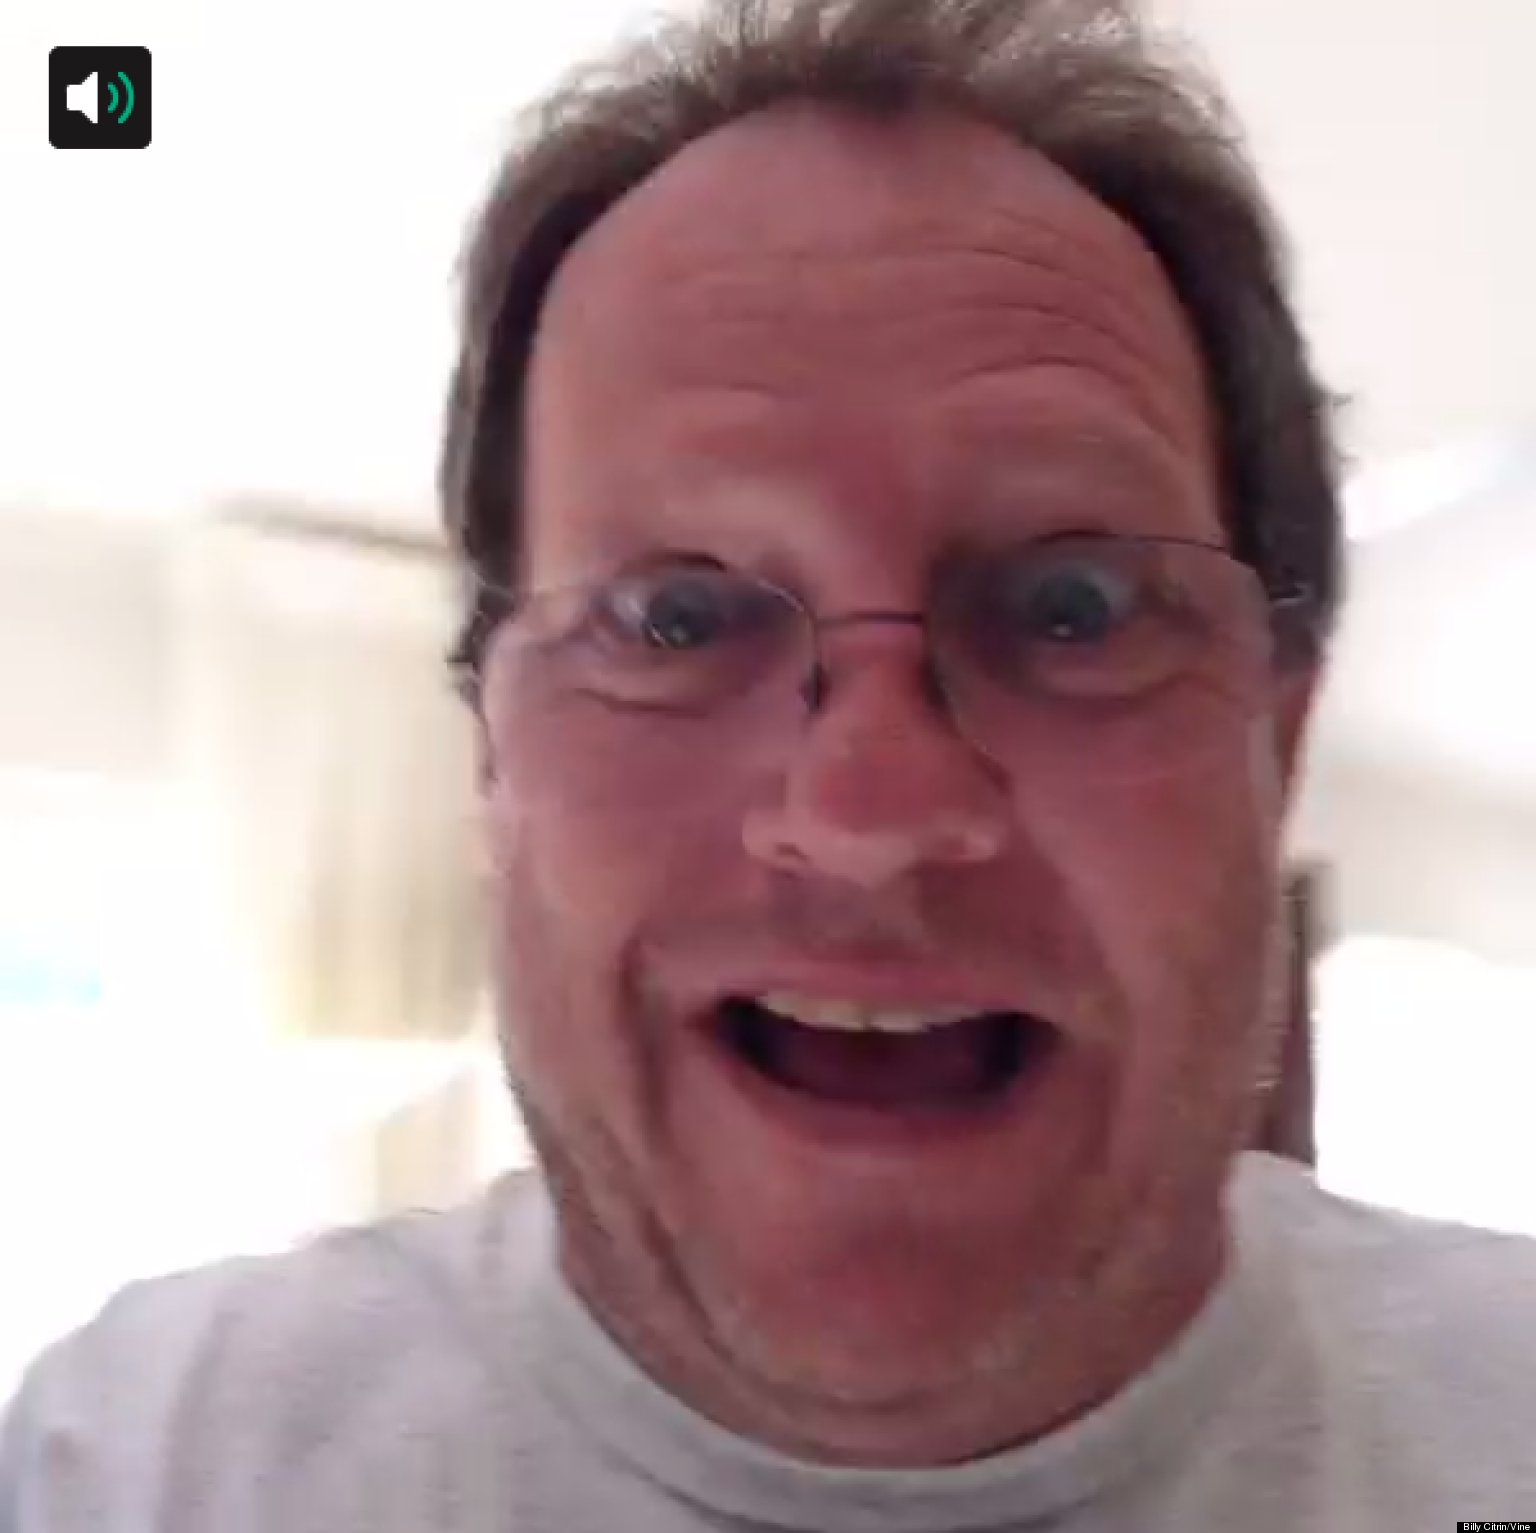 Dads On Vine Prove That Funny Fathers Use The Video App